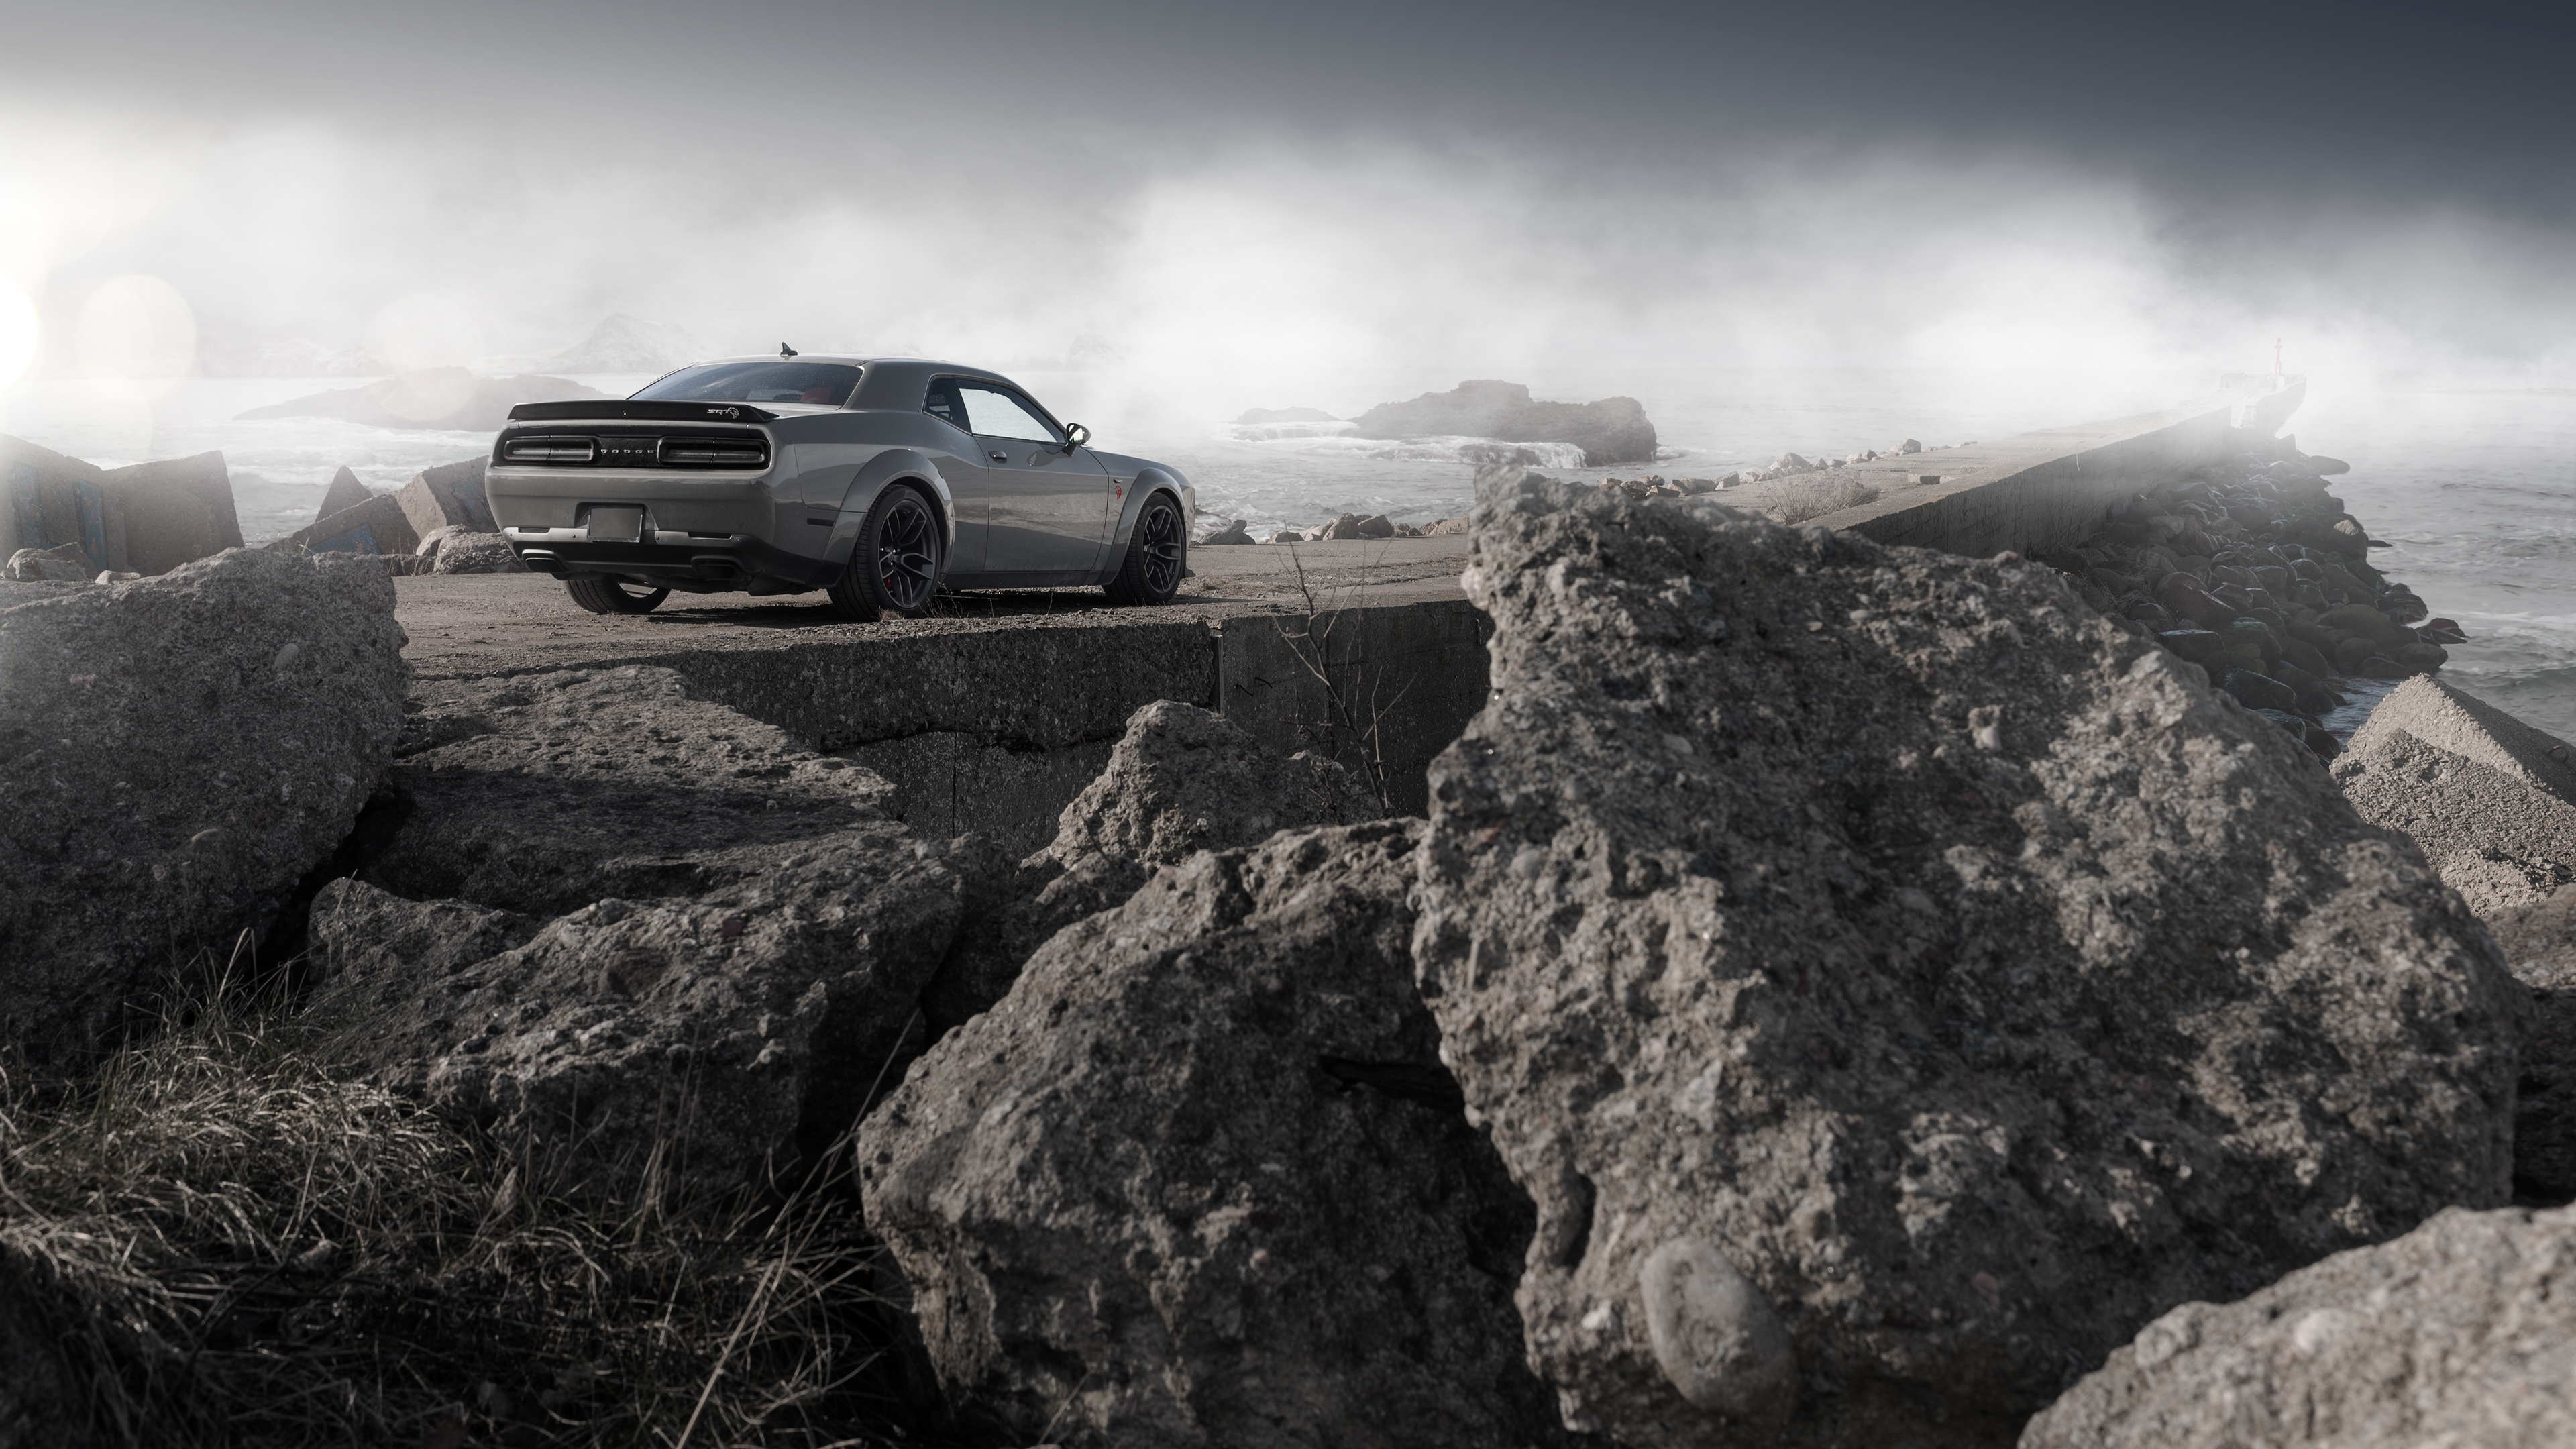 dodge challenger demon srt rear 1572661087 - Dodge Challenger Demon SRT Rear - hd-wallpapers, dodge challenger wallpapers, cars wallpapers, behance wallpapers, 4k-wallpapers